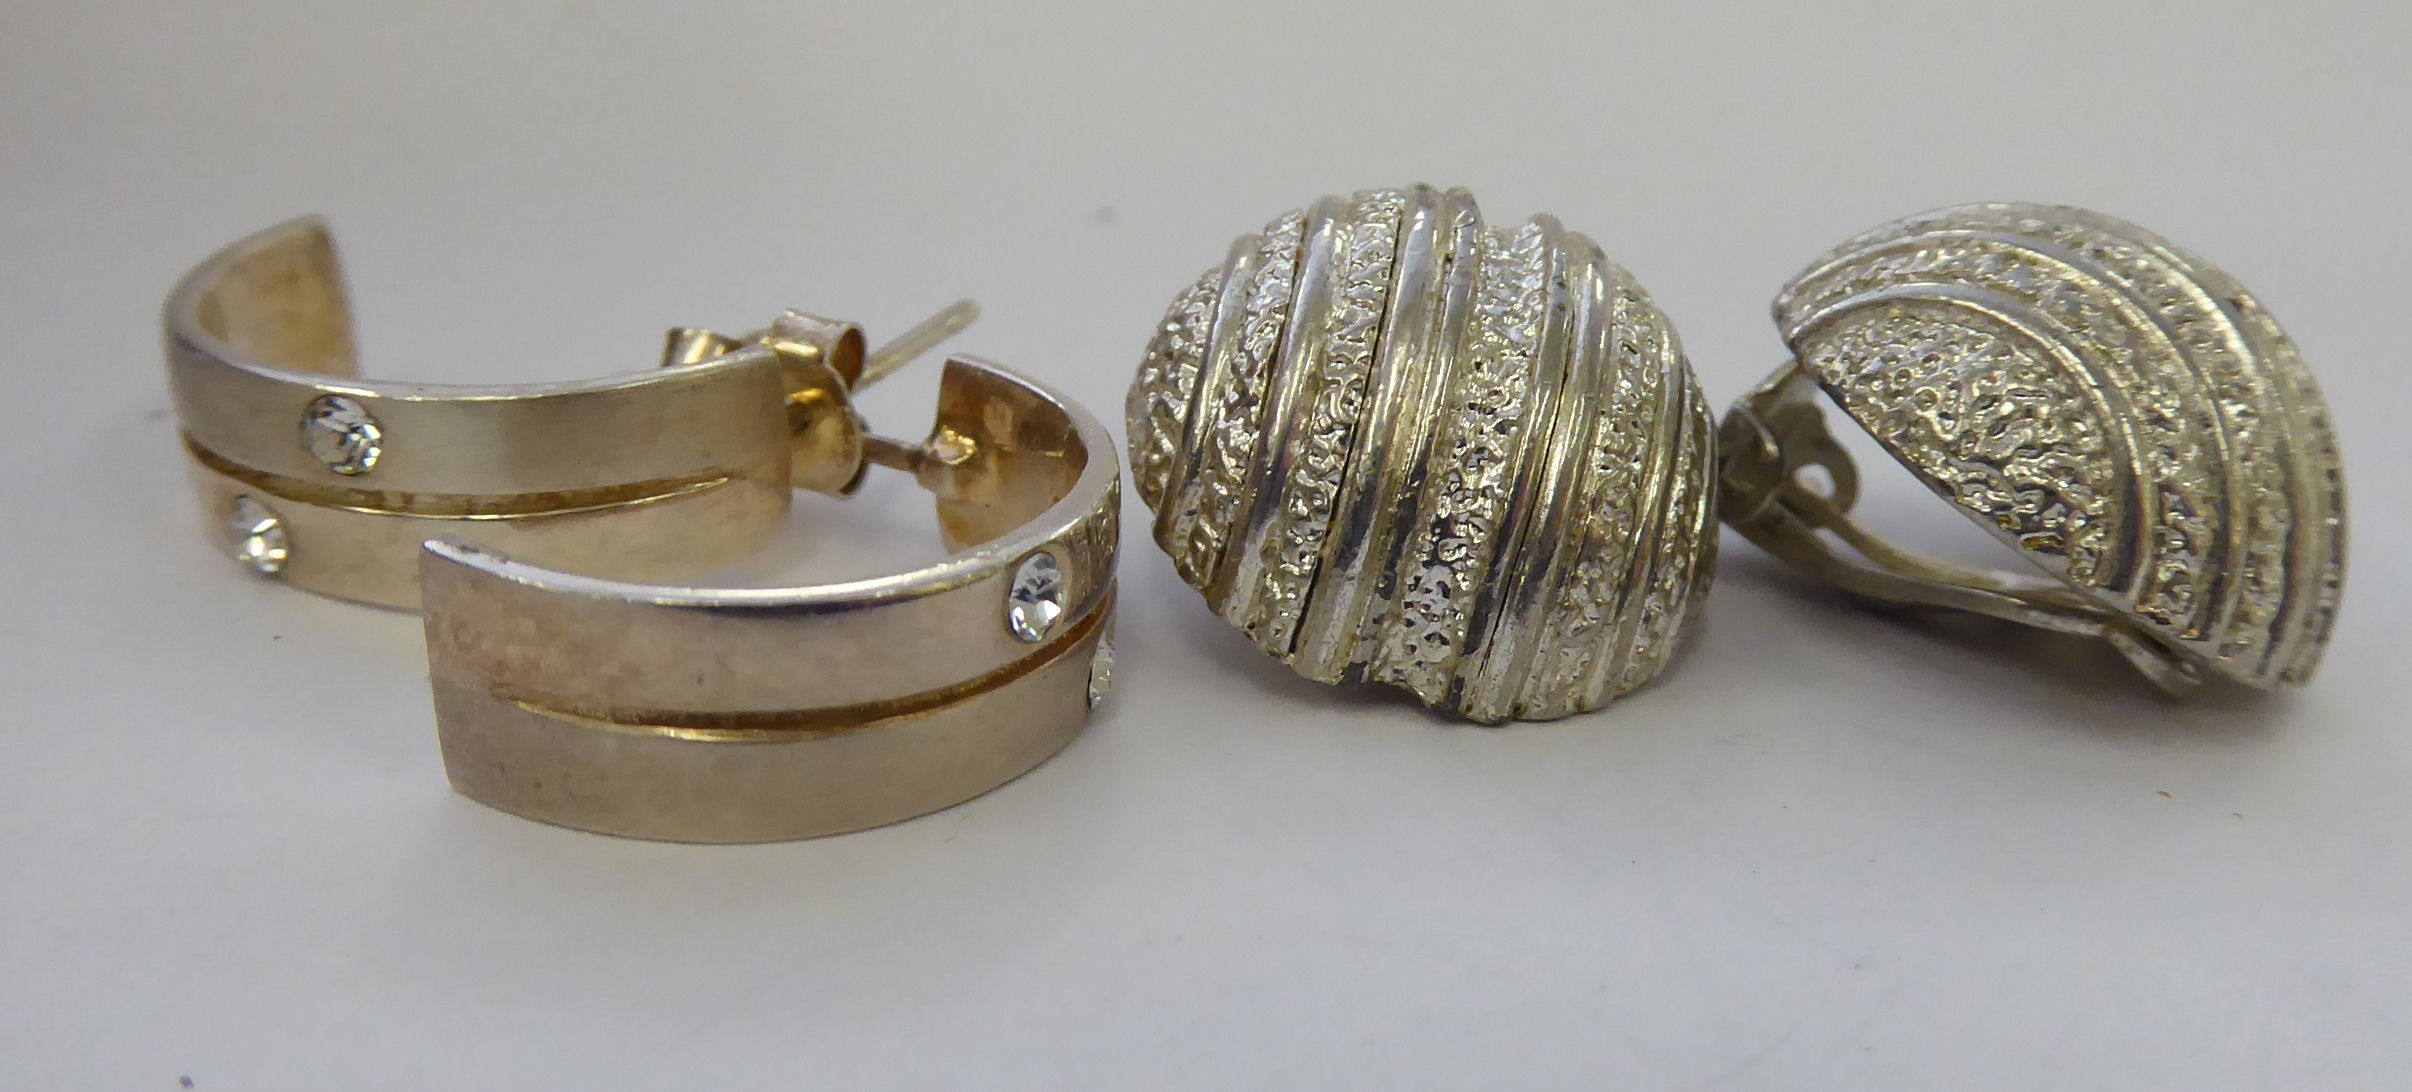 Lot 58 - Two dissimilar pairs of silver earrings 11